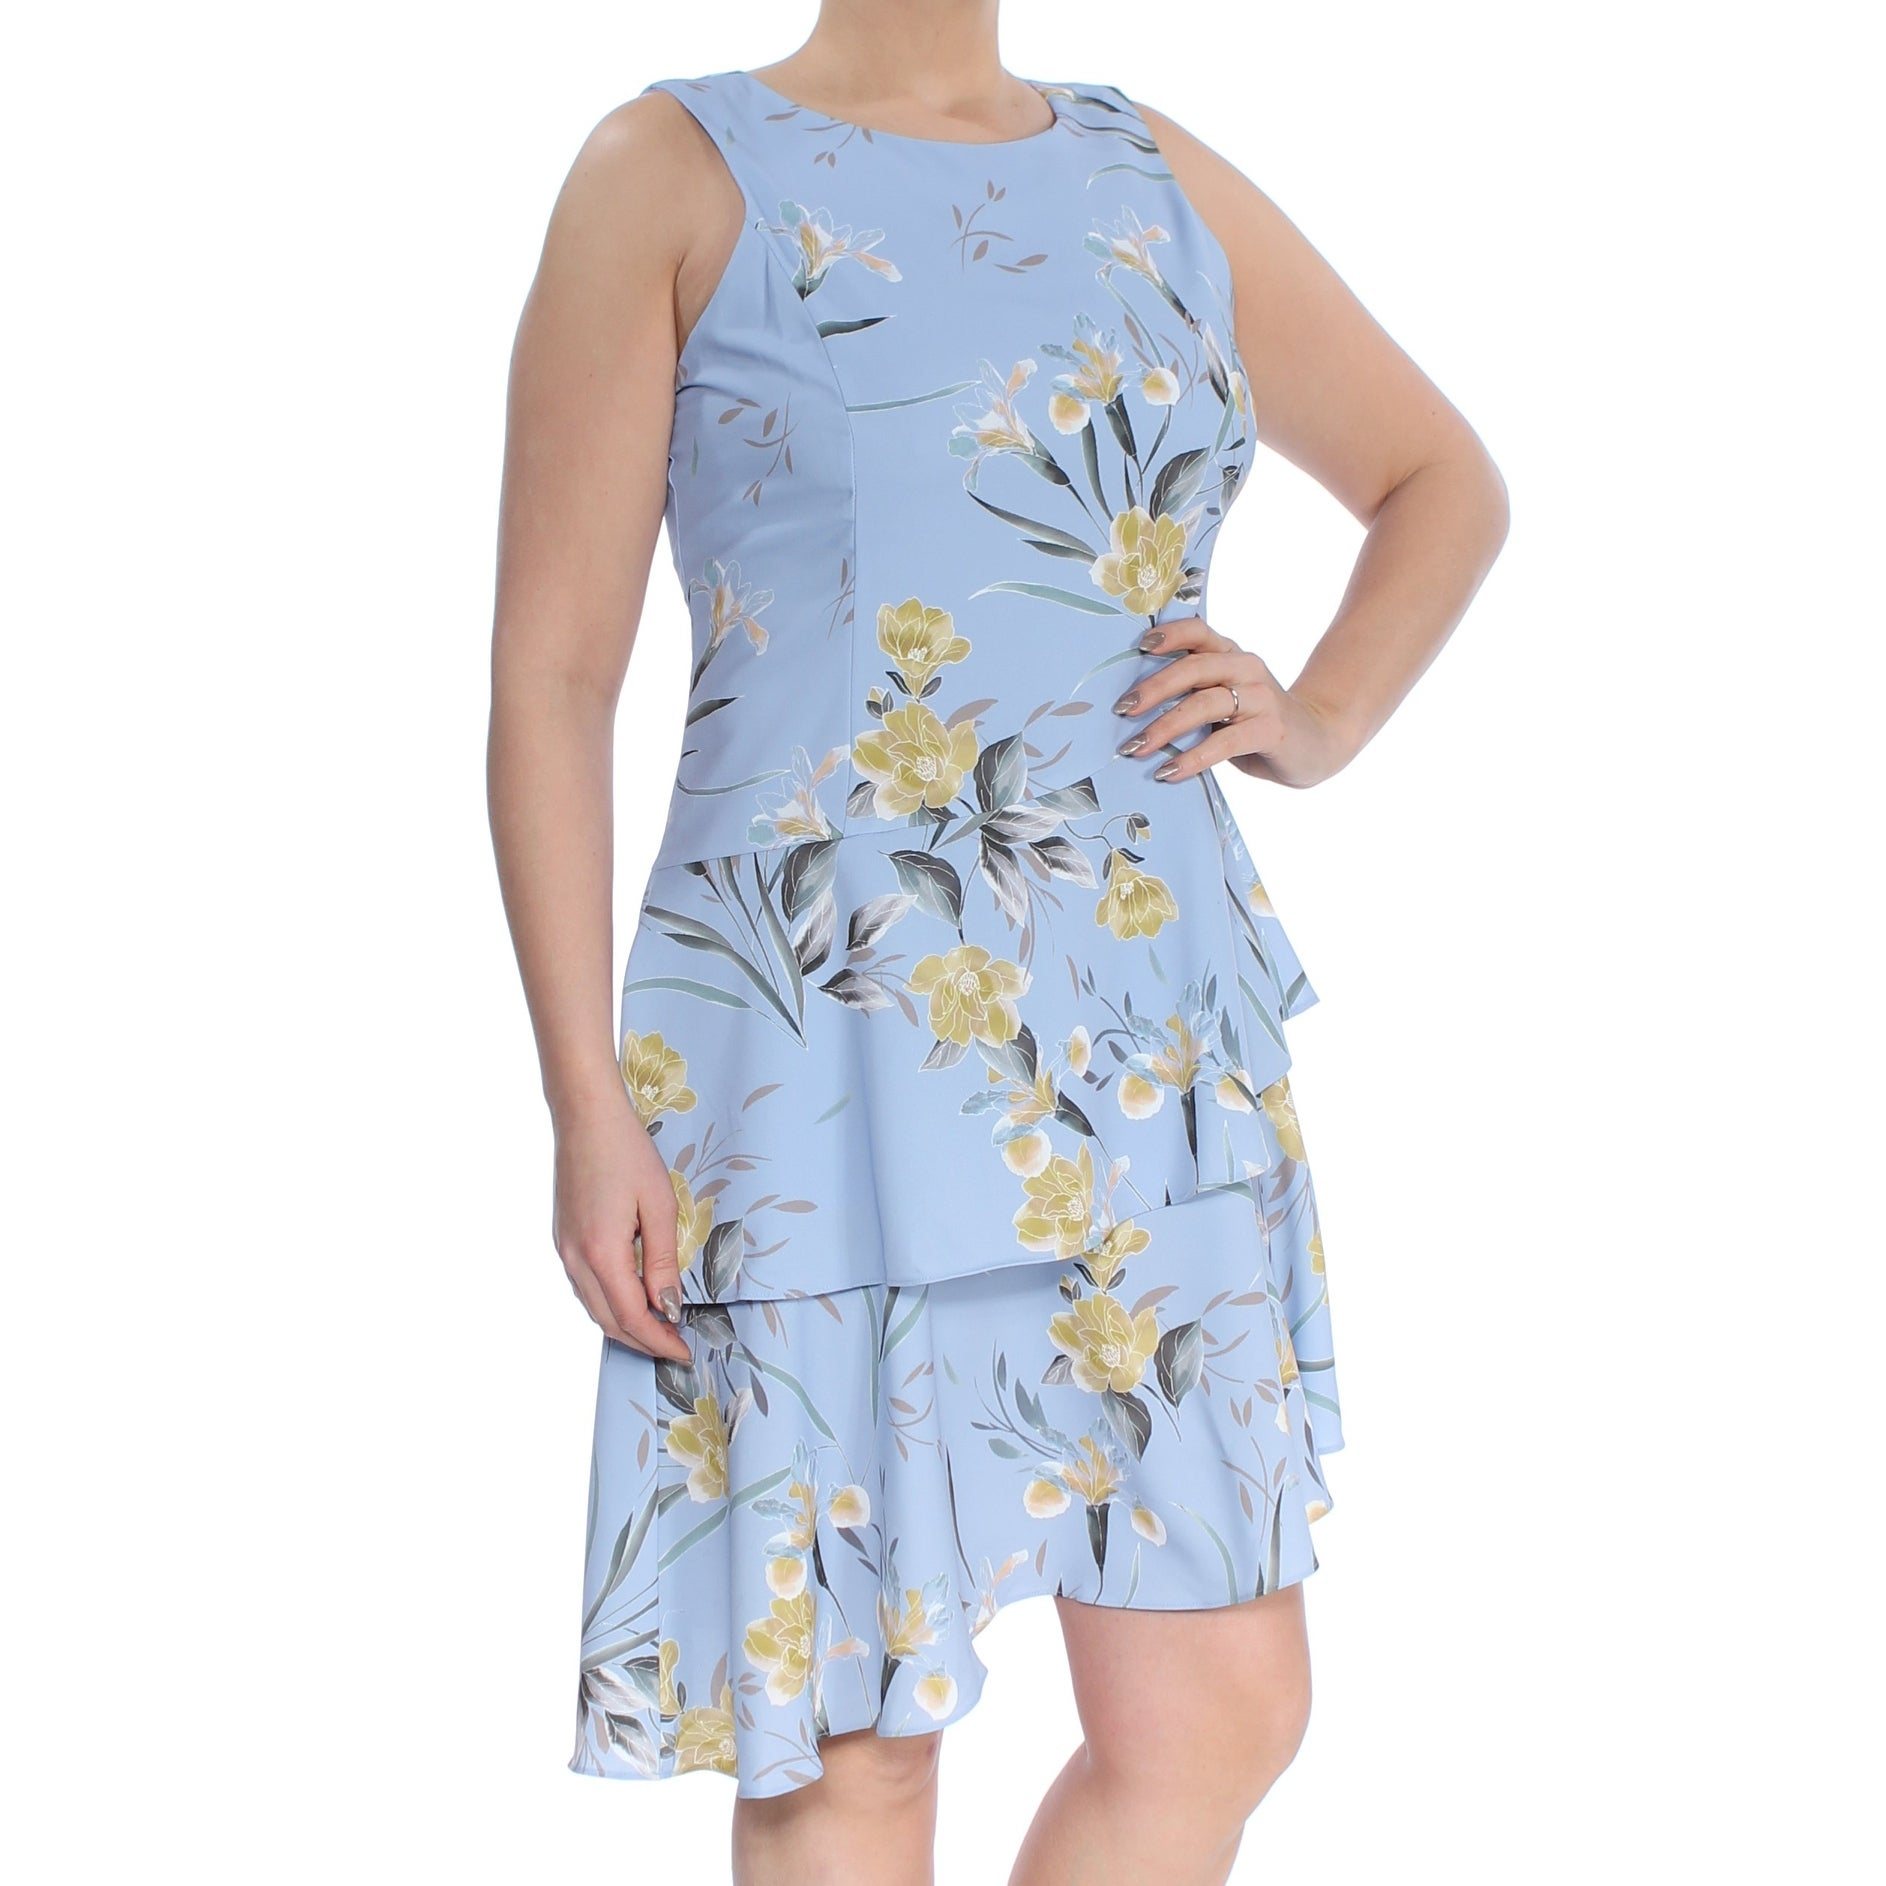 d177c9b7217 Buy Mid-length Casual Dresses Online at Overstock